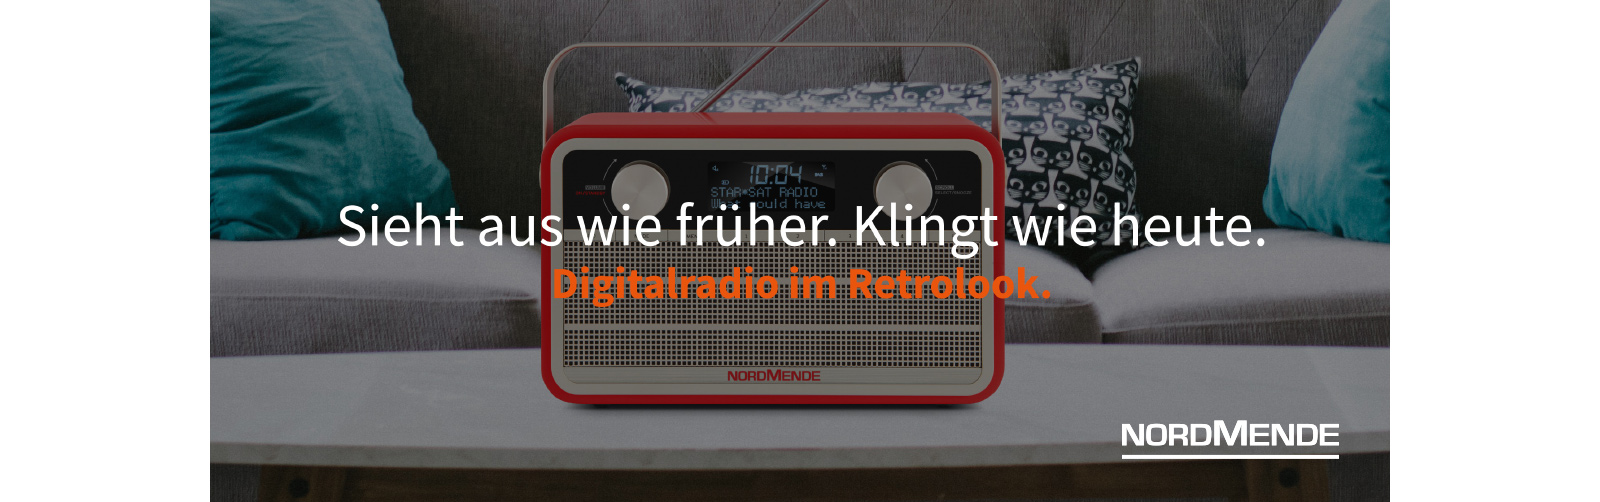 Nordmende - Digitalradio im Retrolook.